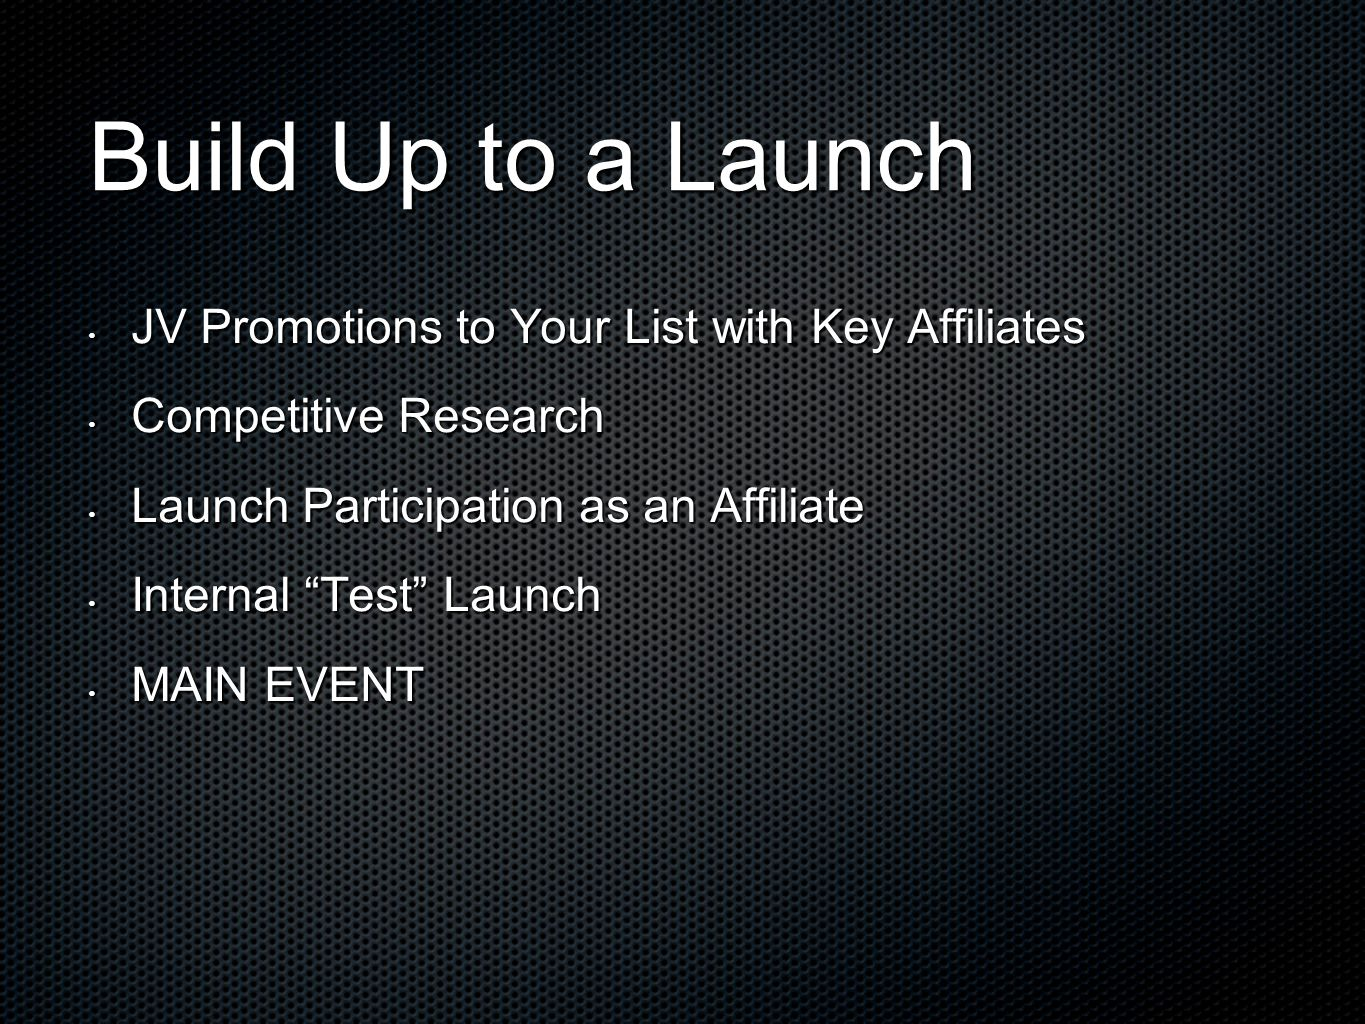 JV Promotions to Your List with Key Affiliates JV Promotions to Your List with Key Affiliates Competitive Research Competitive Research Launch Participation as an Affiliate Launch Participation as an Affiliate Internal Test Launch Internal Test Launch MAIN EVENT MAIN EVENT